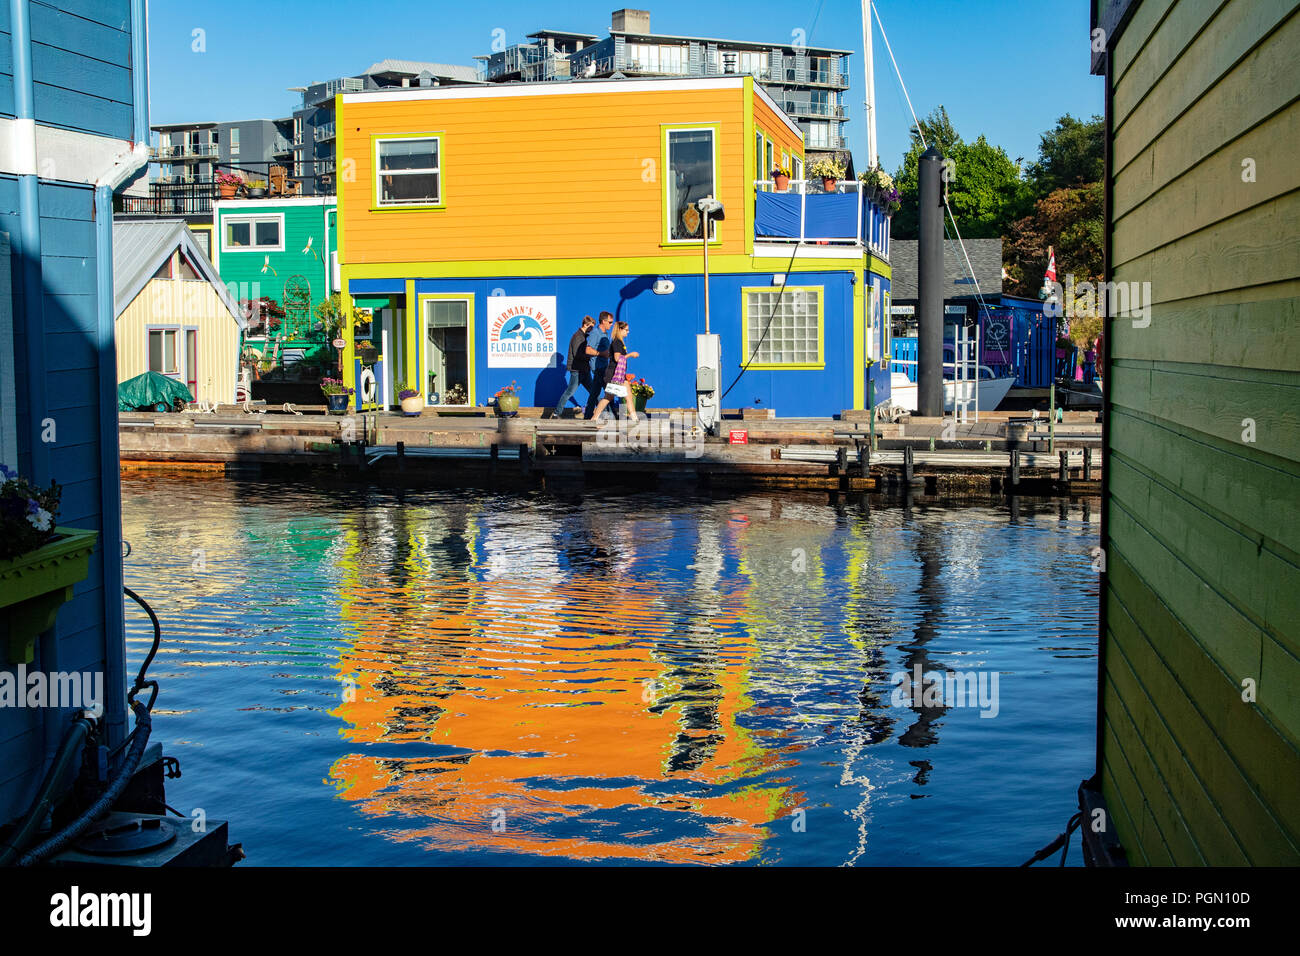 Colorful Float Homes at Fisherman's Wharf - Victoria, Vancouver Island, British Columbia, Canada - Stock Image